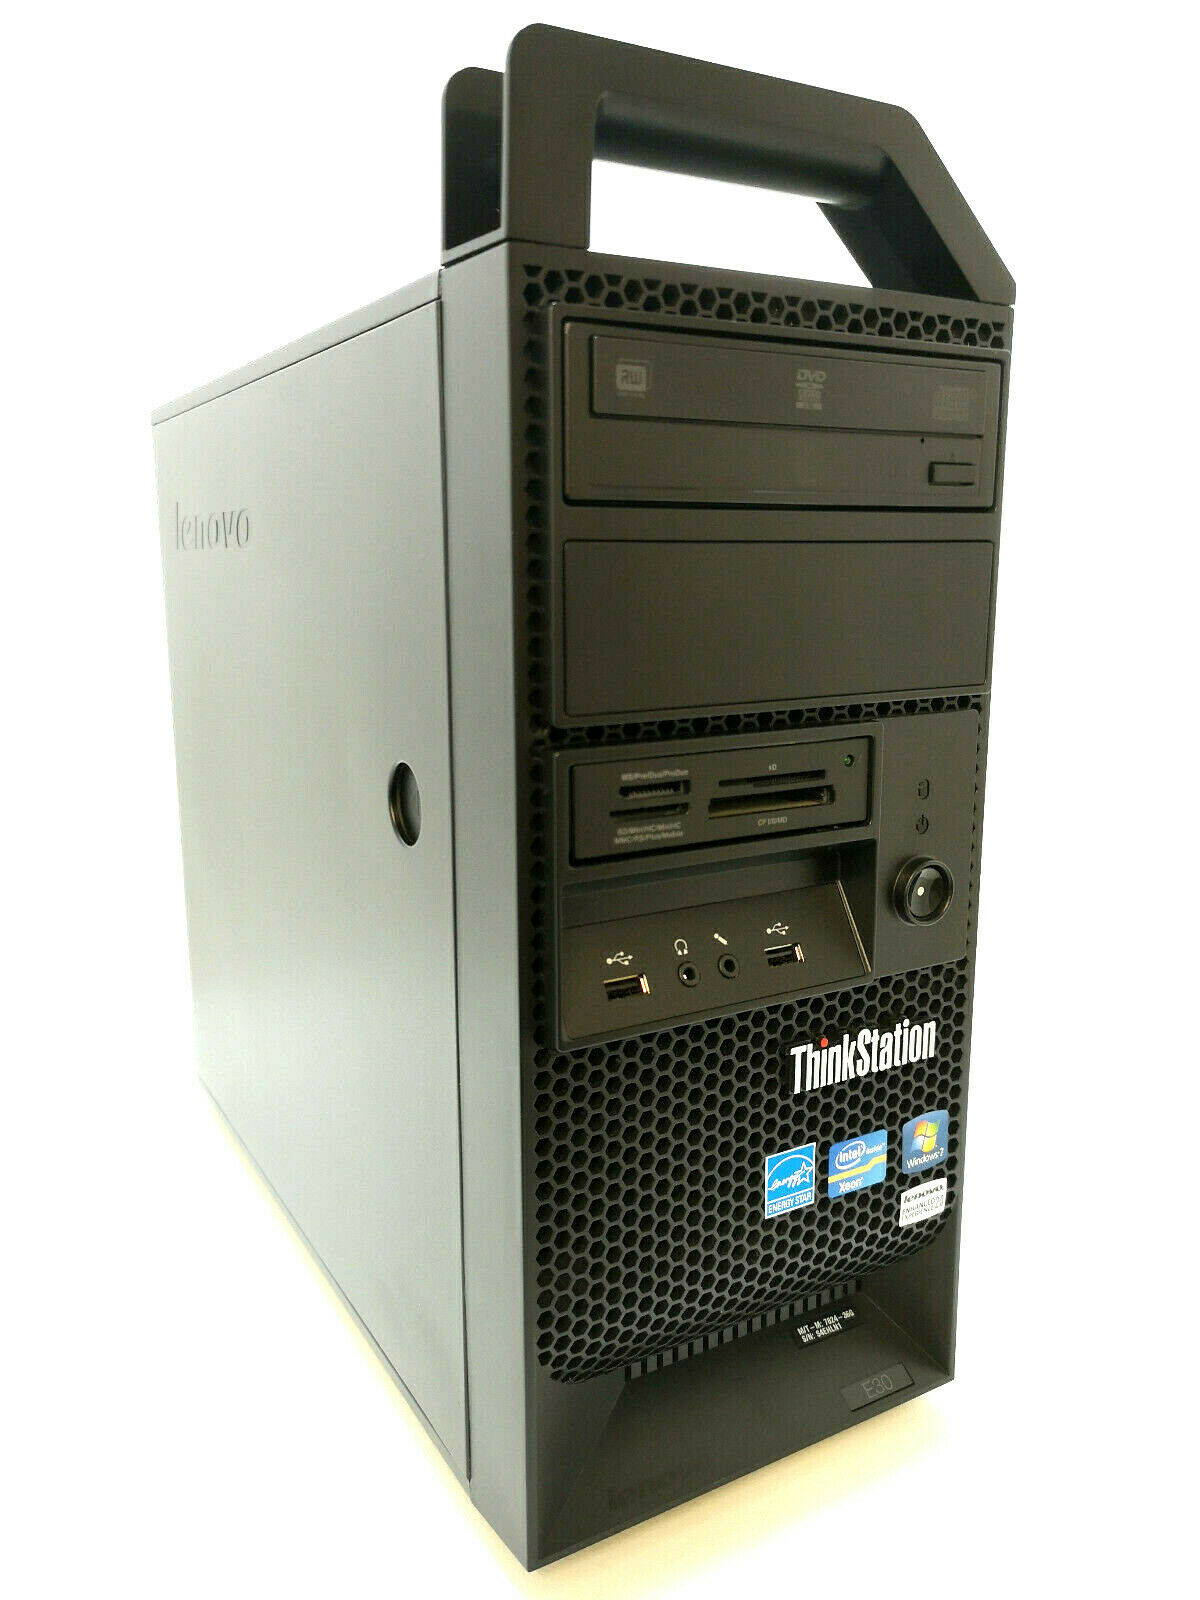 Lenovo-Think-Station-E30 - 137107